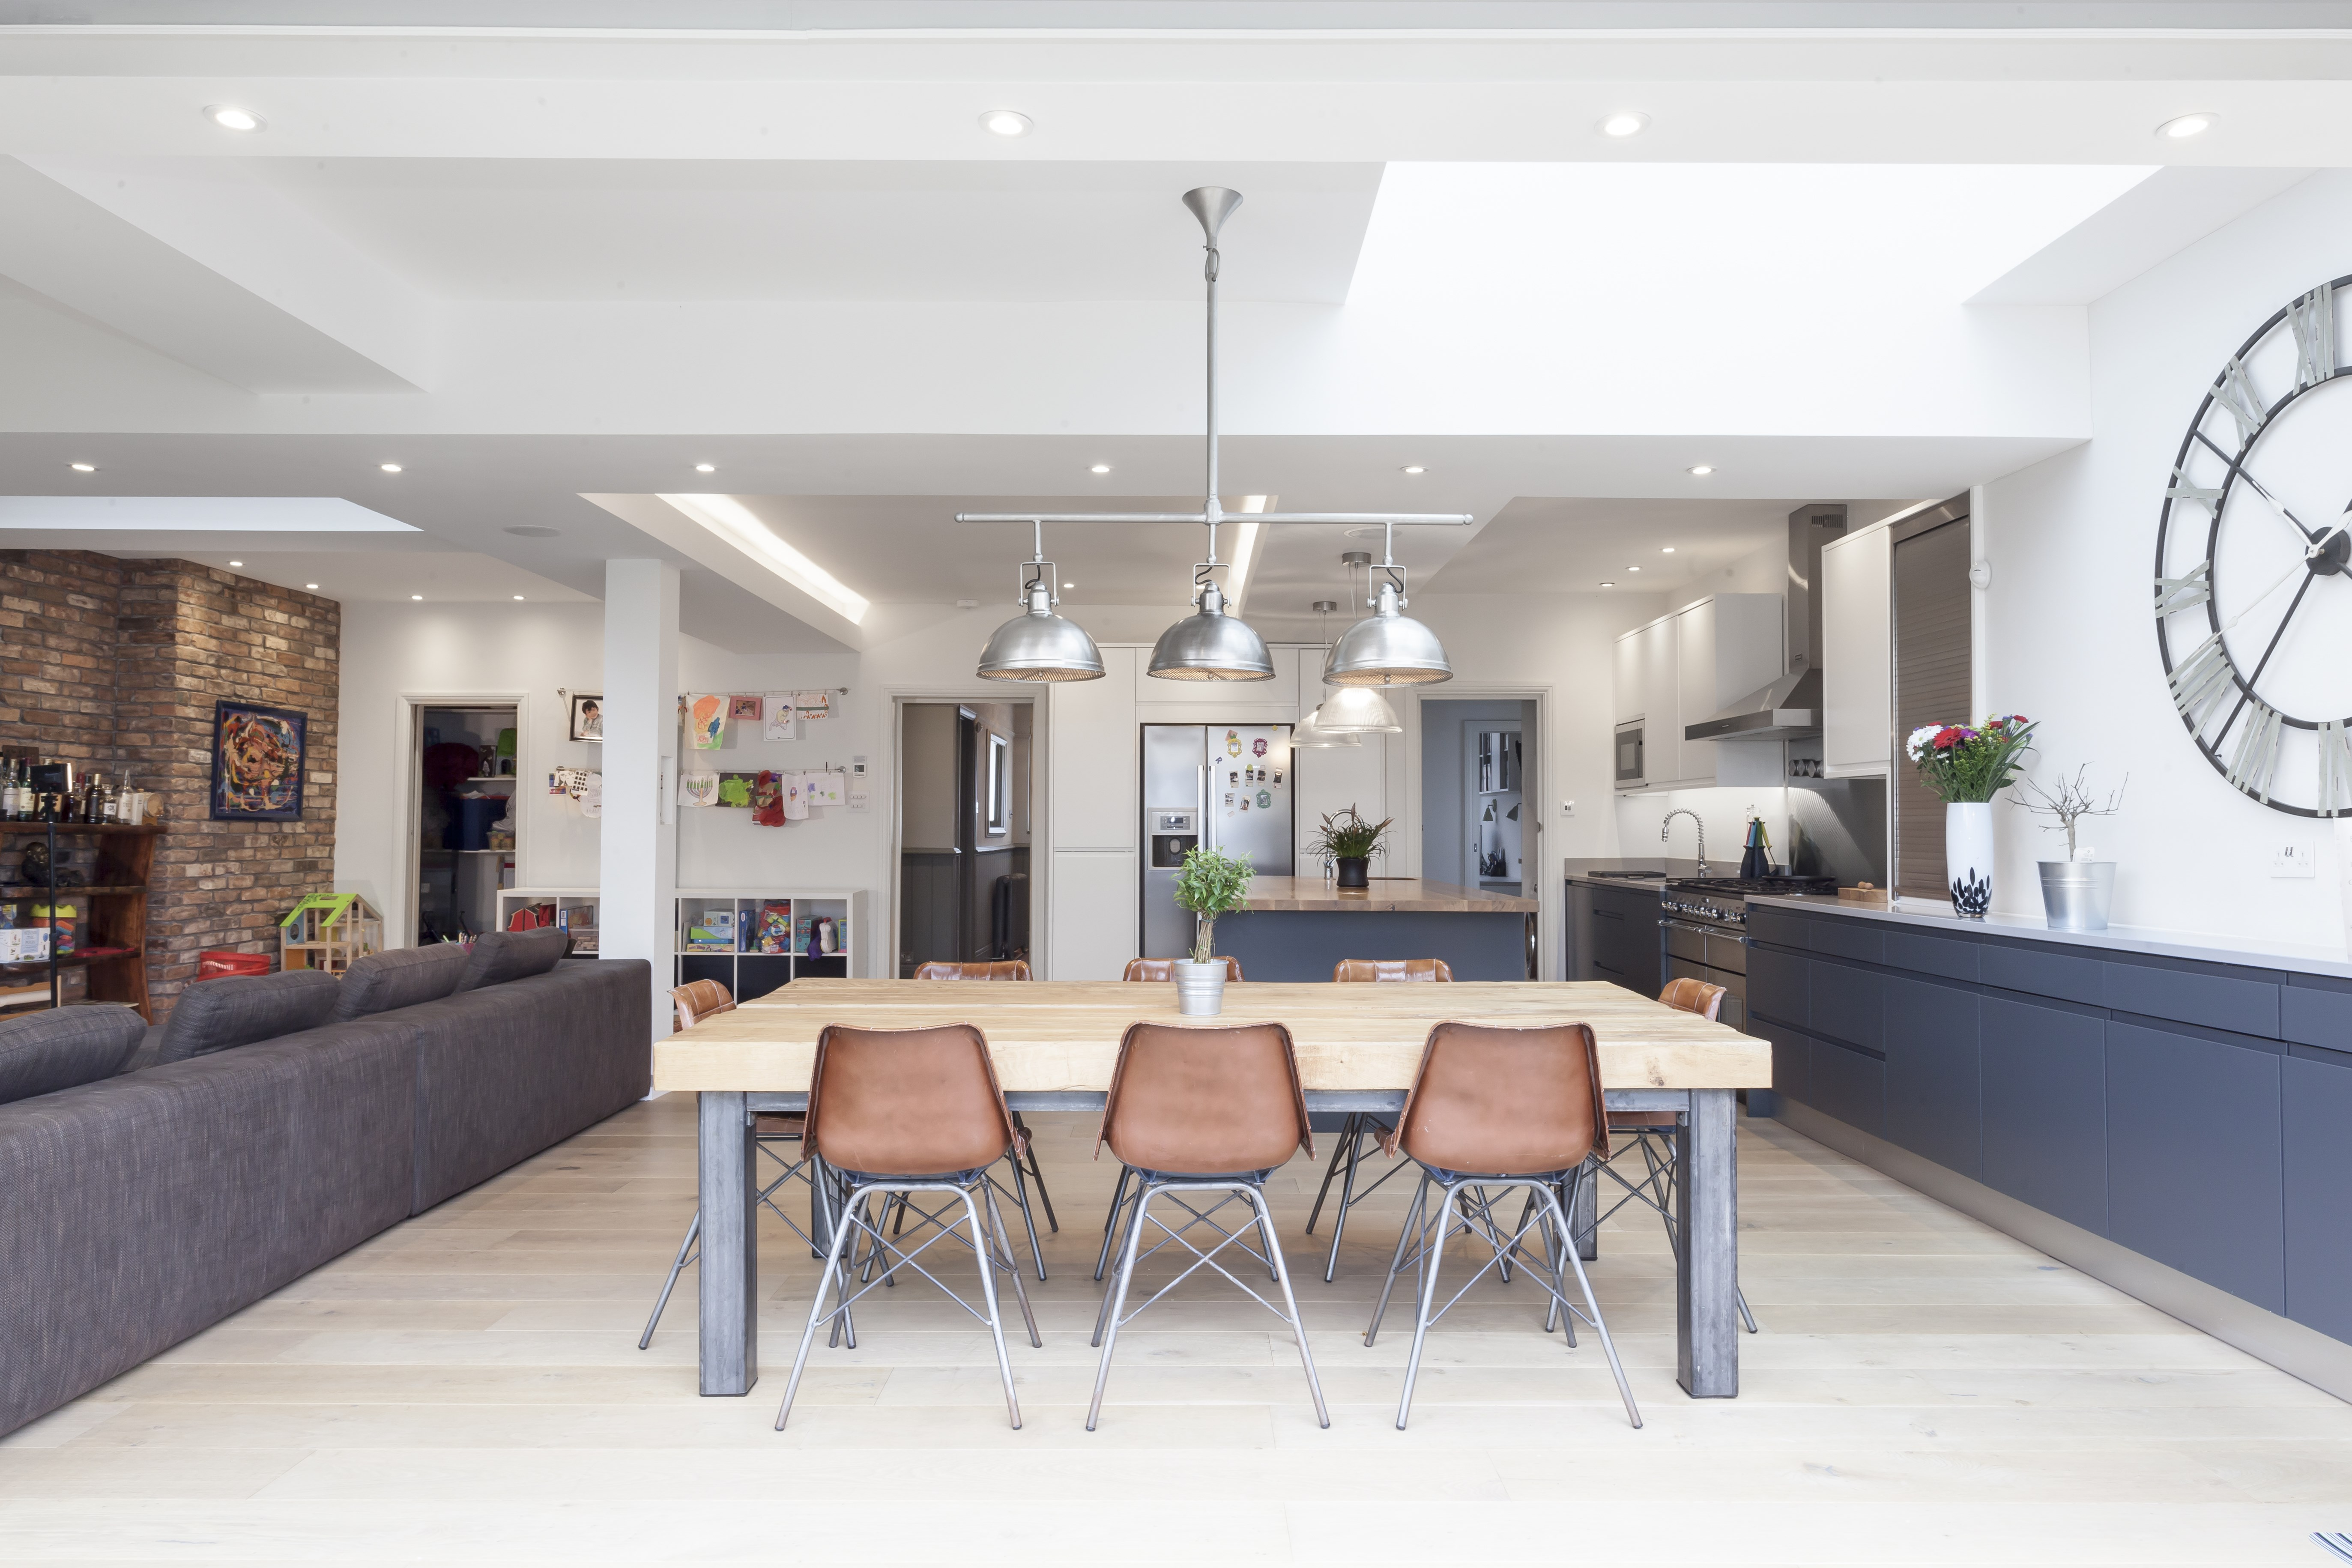 </p> <p>Find your ideal home design pro on designfor-me.com - get matched and see who's interested in your home project. Click image to see more inspiration from our design pros</p> <p>Design by Phil, architect from Haringey, London</p> <p>#architecture #homedesign #modernhomes #homeinspiration #kitchens #kitchendesign #kitcheninspiration #kitchenideas #kitchengoals #extensions #extensiondesign #extensioninspiration #extensionideas #houseextension #skylights #rooflights </p> <p>